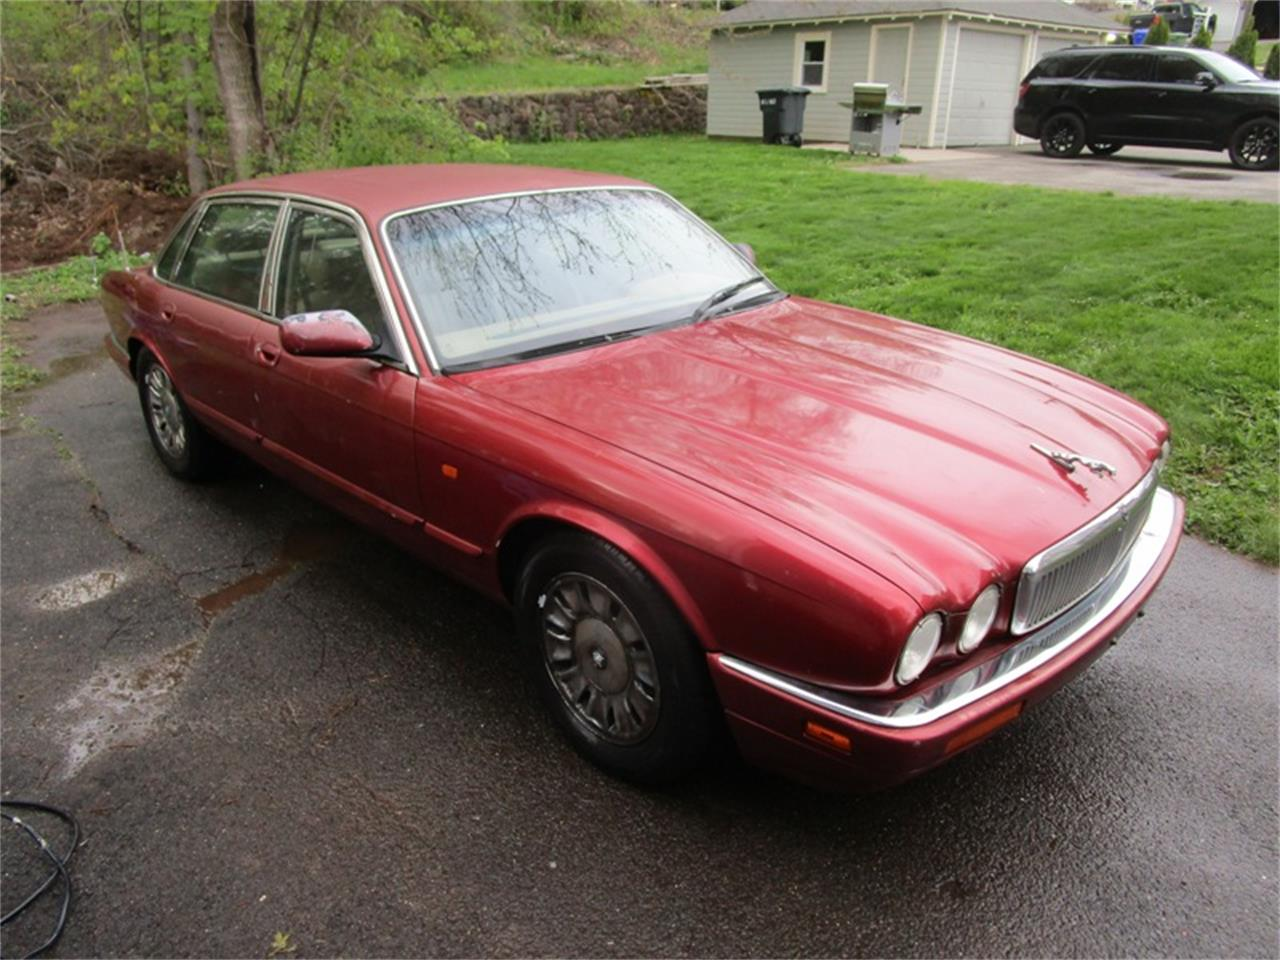 Large Picture of '95 Jaguar XJ6 - $1,000.00 Offered by Auto Archeologist - Q2PU